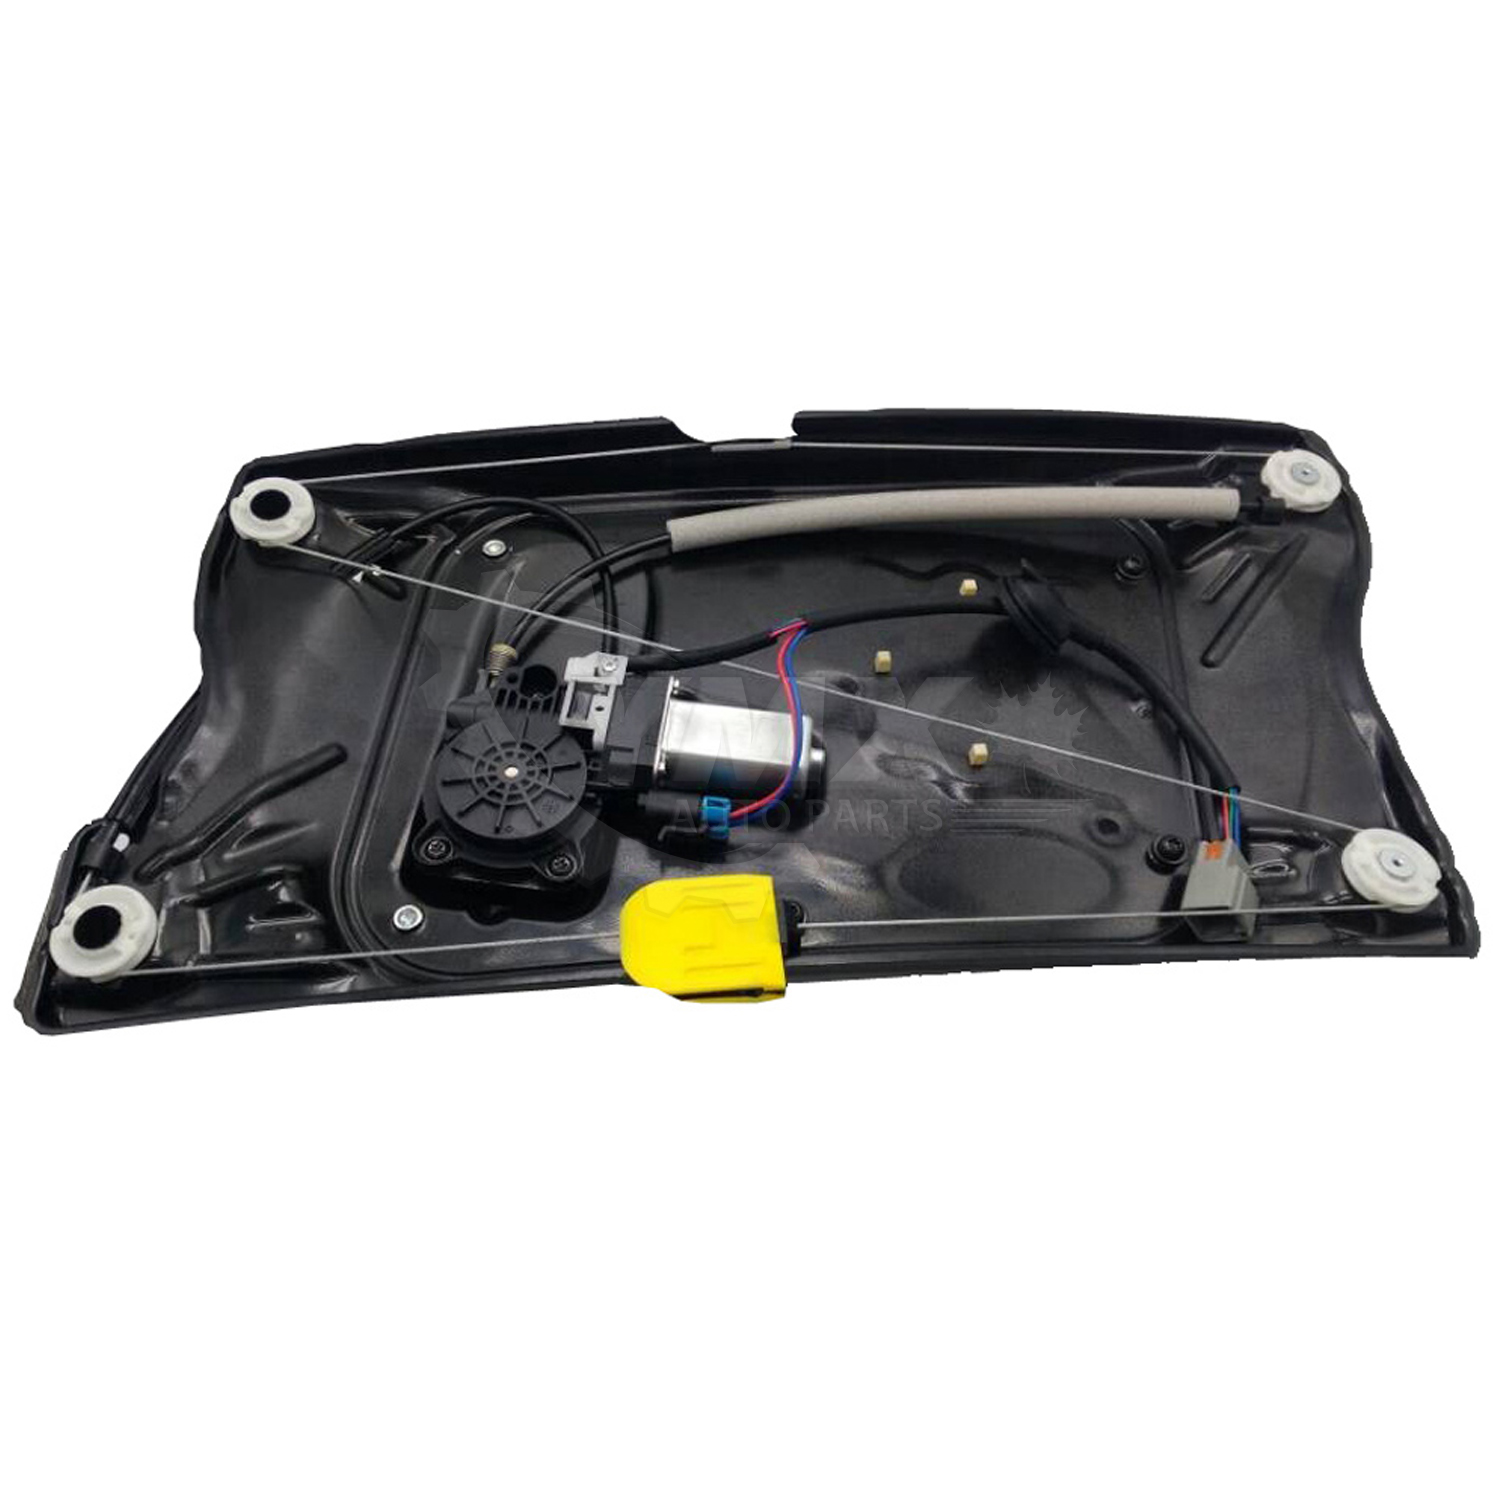 Details about New Land Rover LR2 Window Regulator Front Passenger RIGHT OE  Quality Direct Fit